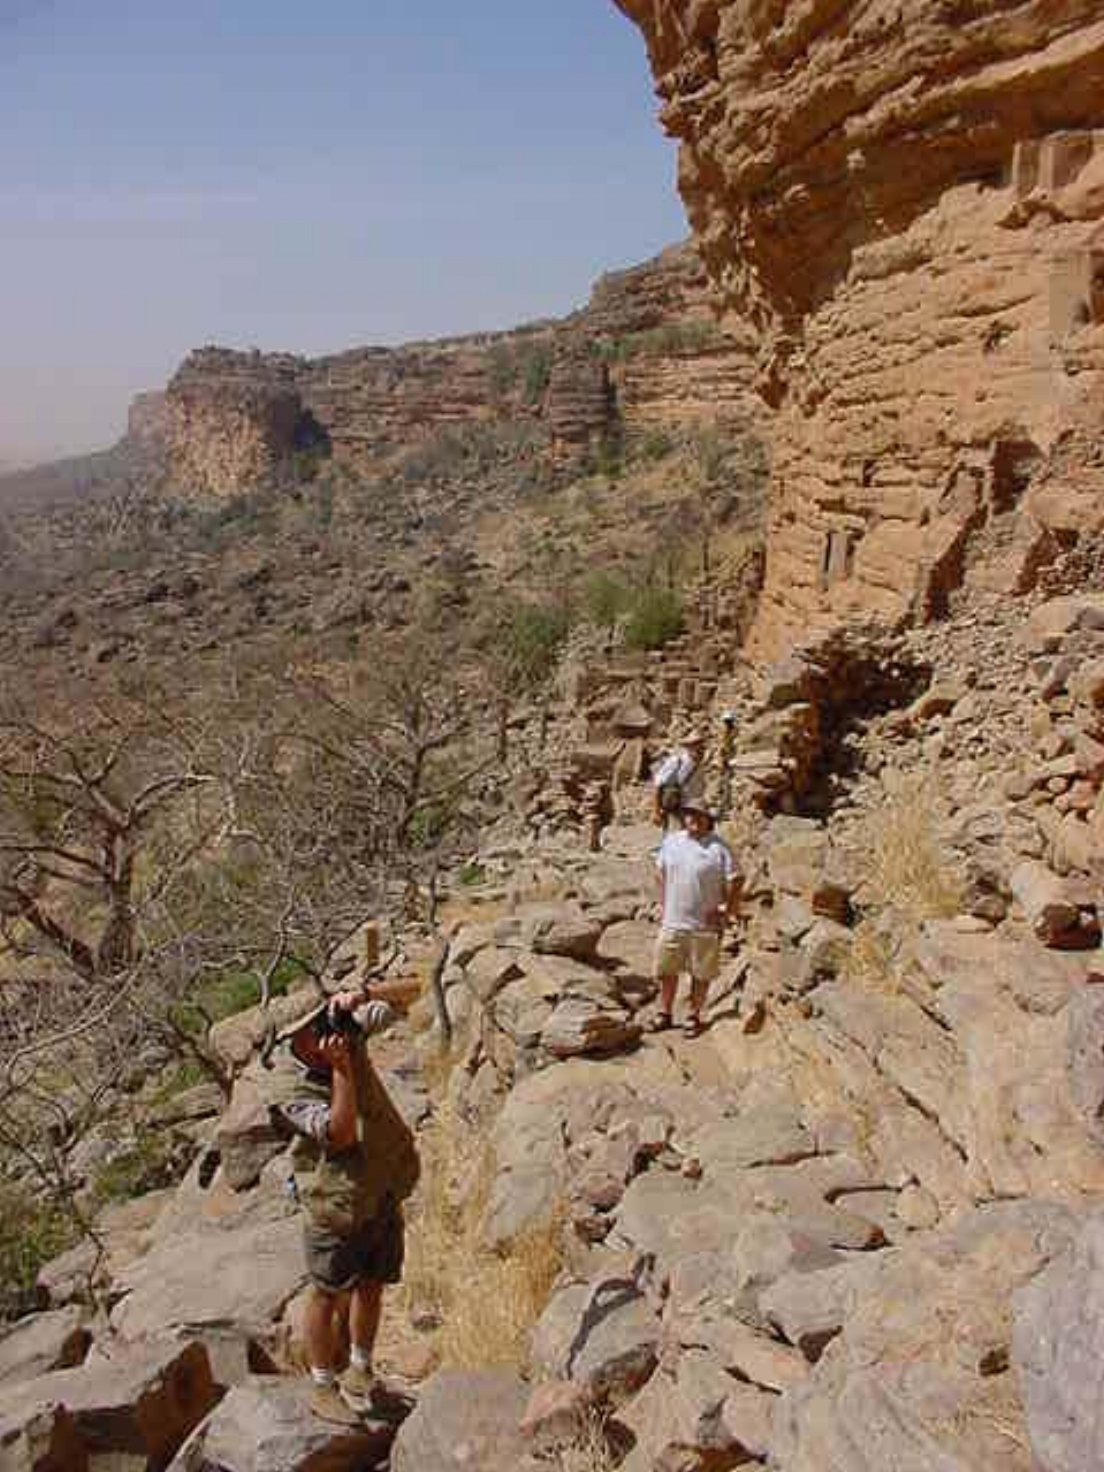 A day in the Dogon area is great exercise